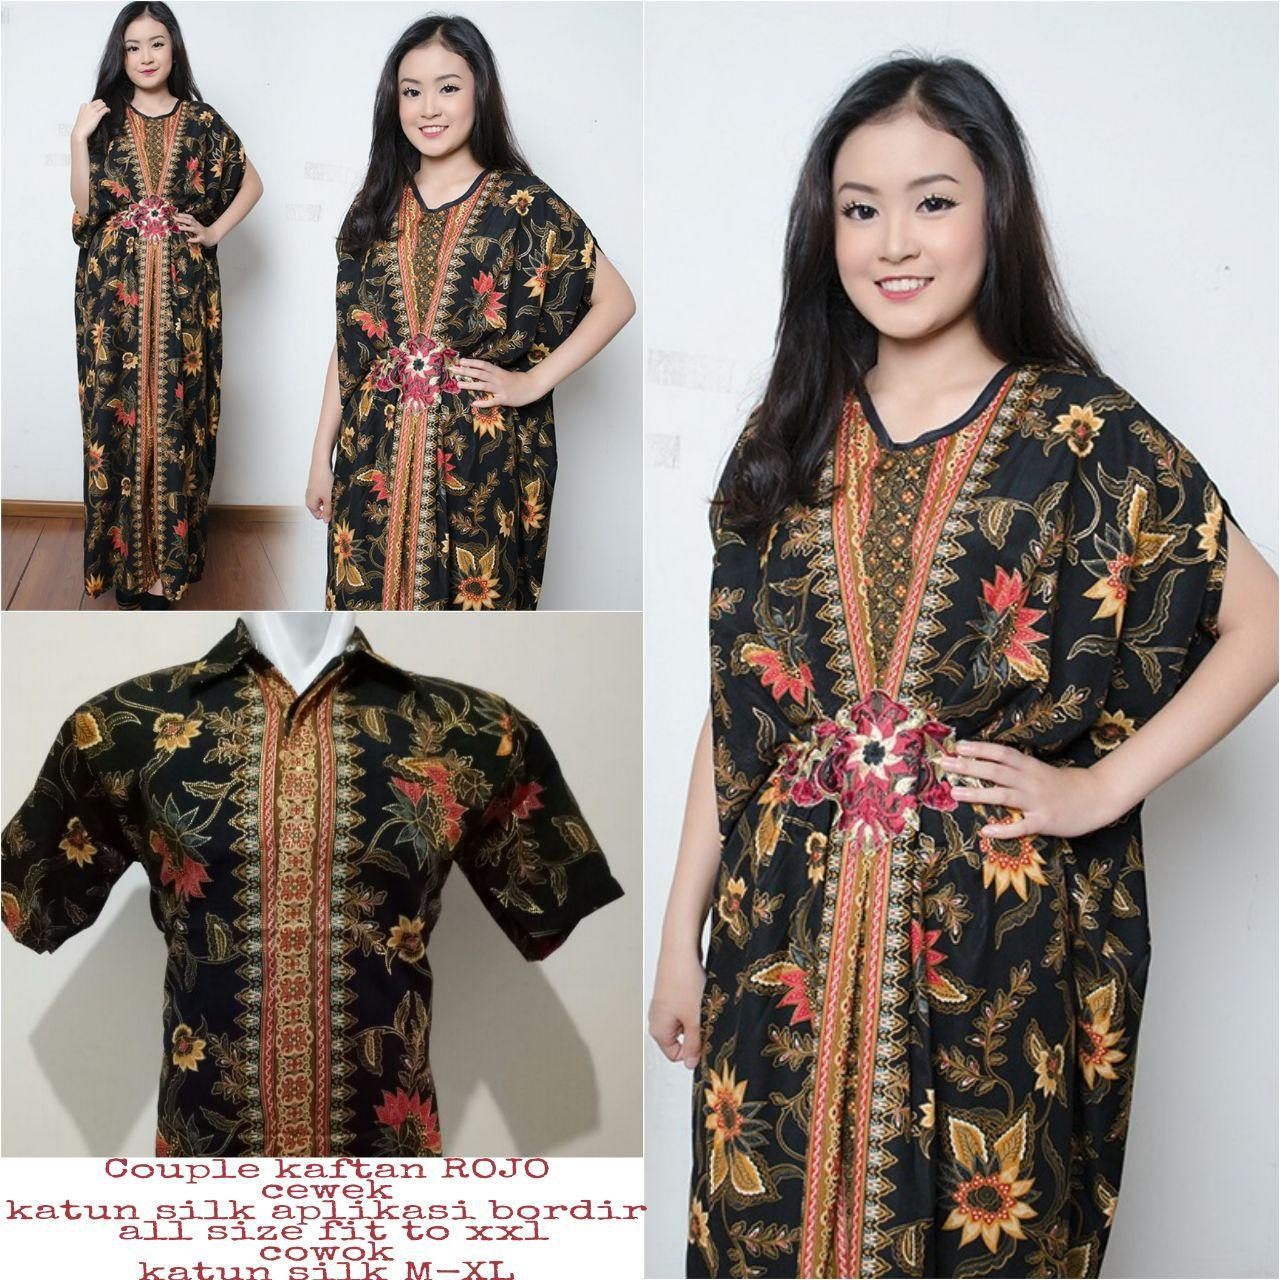 Glow fashion Couple batik 2in1 dress maxi panjang gamis kaftan wanita jumbo long dress dan atasan kemeja pria dewasa shirt Firda M – XL